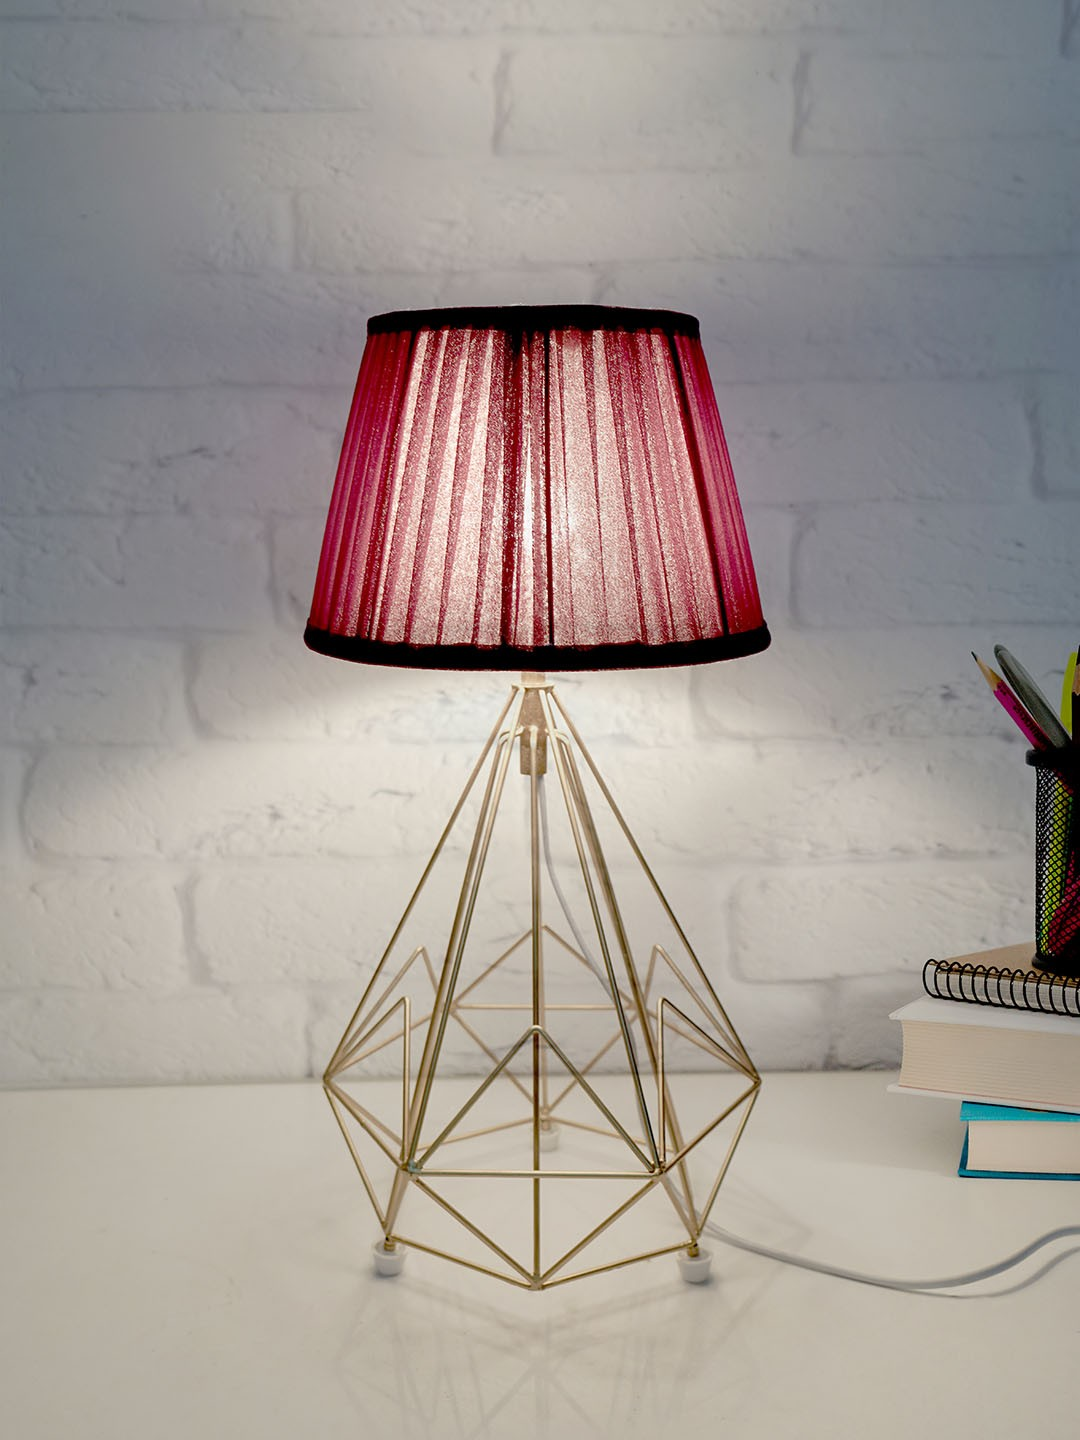 Golden Metal Wire Cage Diamond Pyramid Bedside Table Lamp with Pleated Maroon Fabric Shade